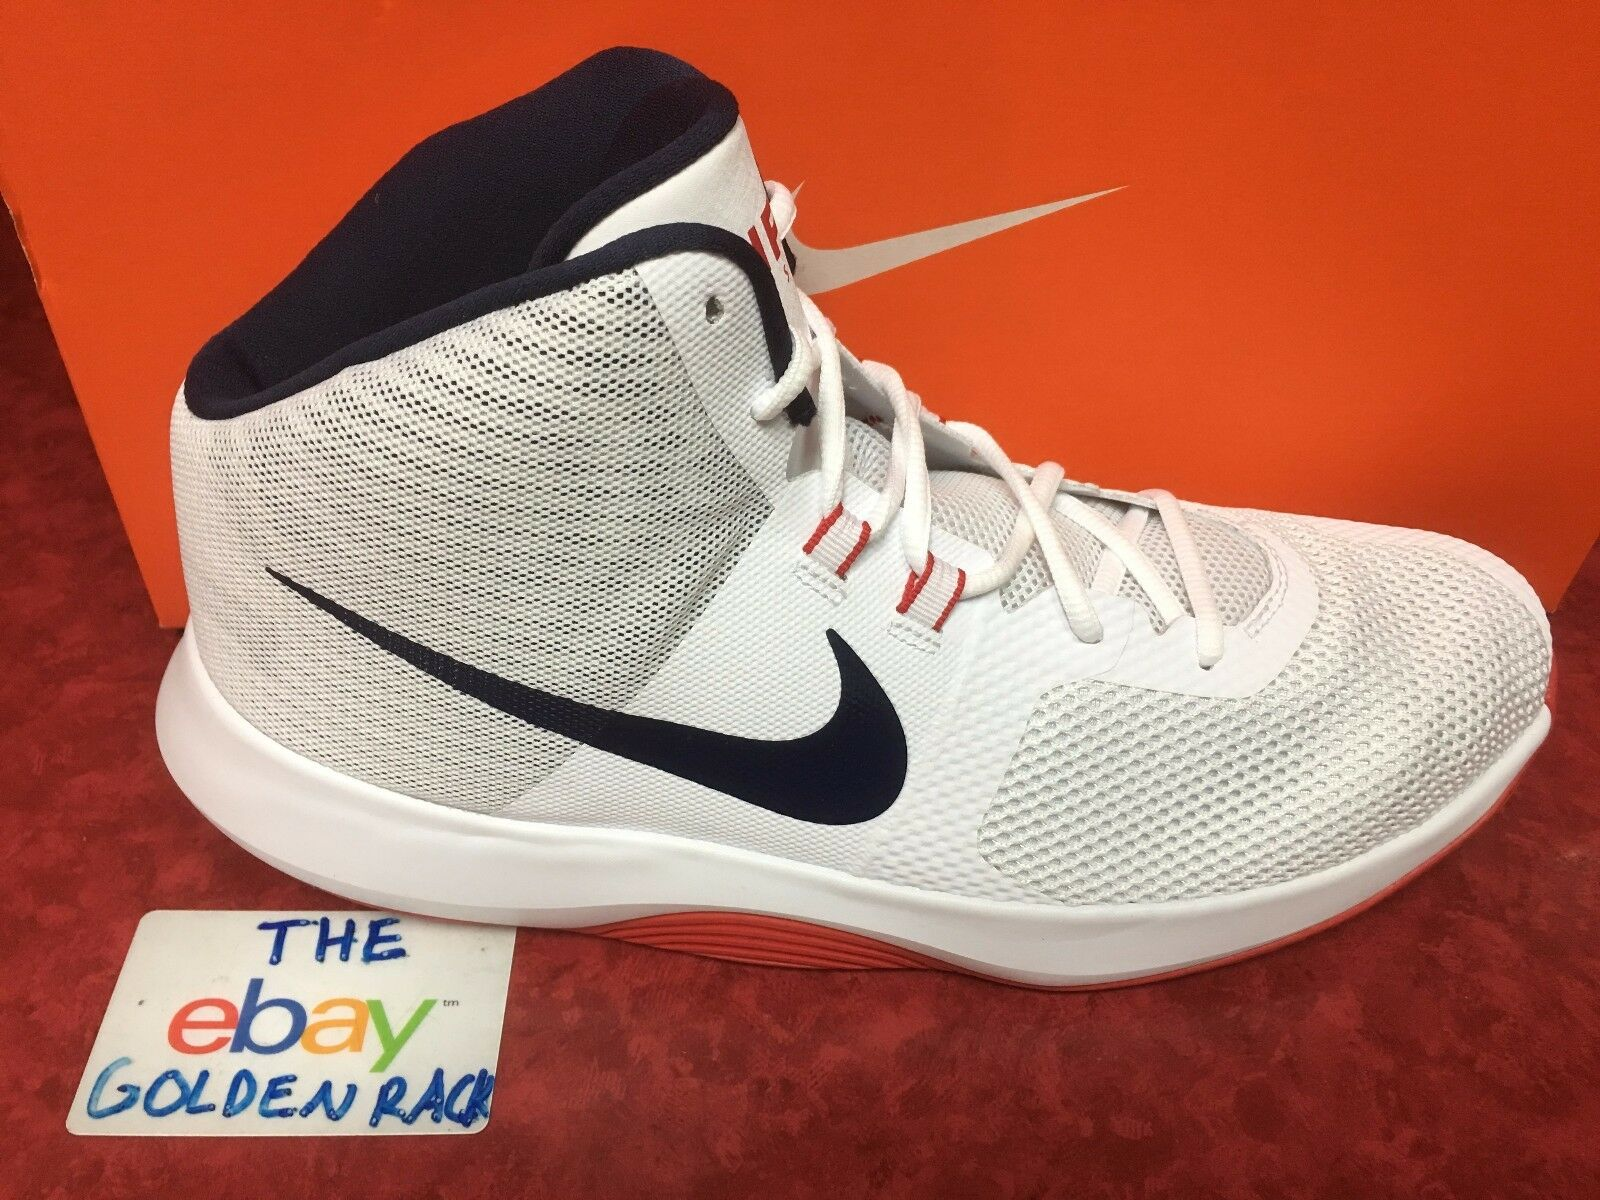 Nike Air Precision 898455-101 Basketball White Navy-Red Men's shoes Size 13 NIB